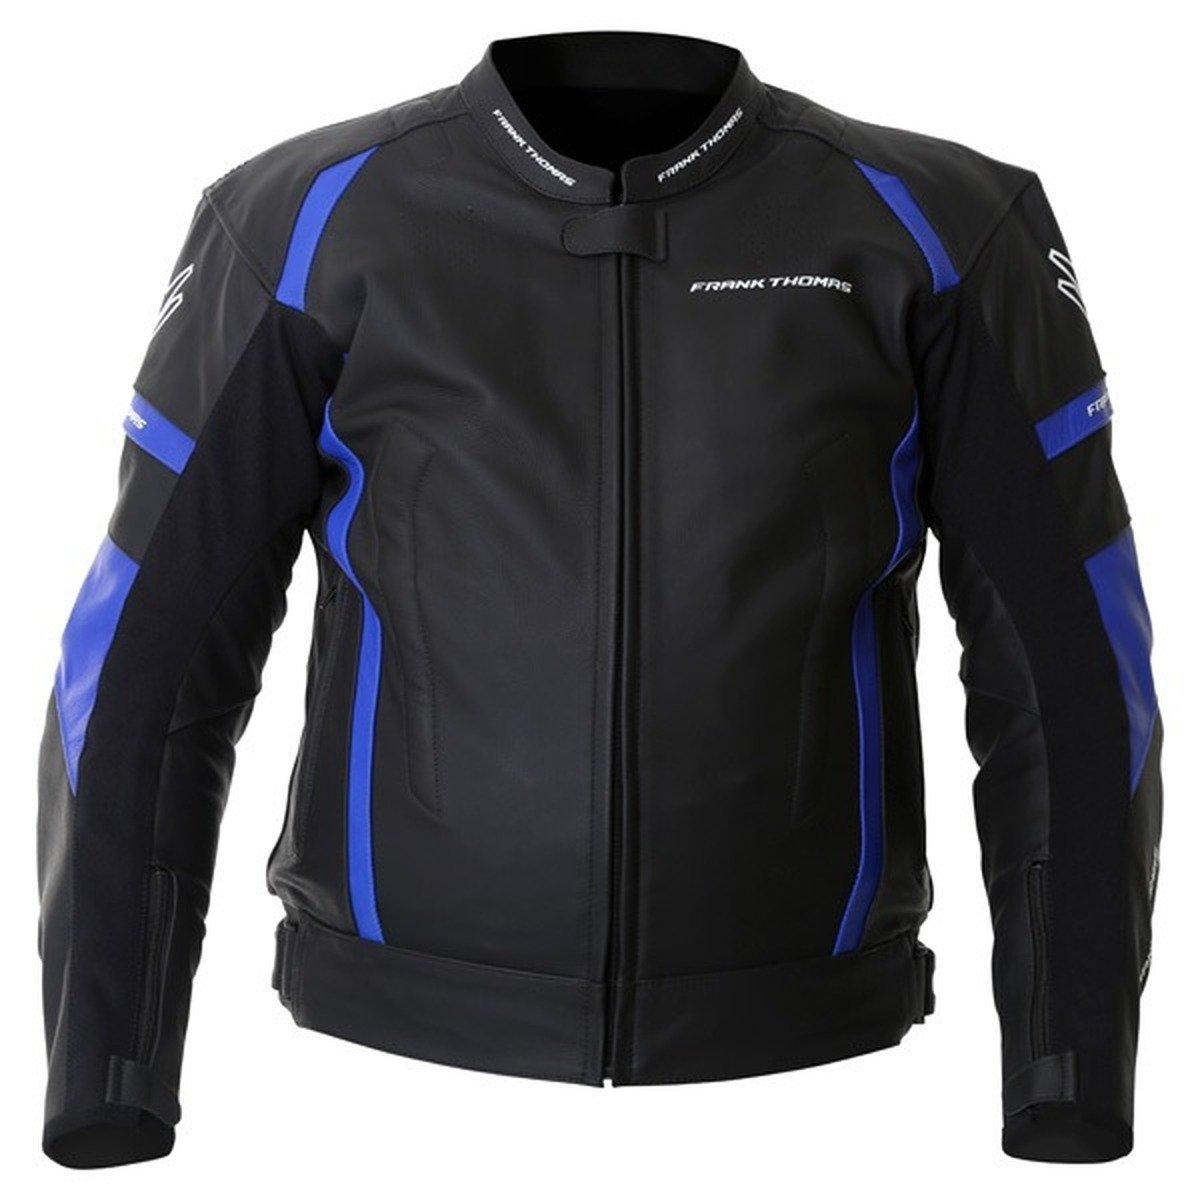 Frank Thomas Dynamic Jacket in Black and Blue